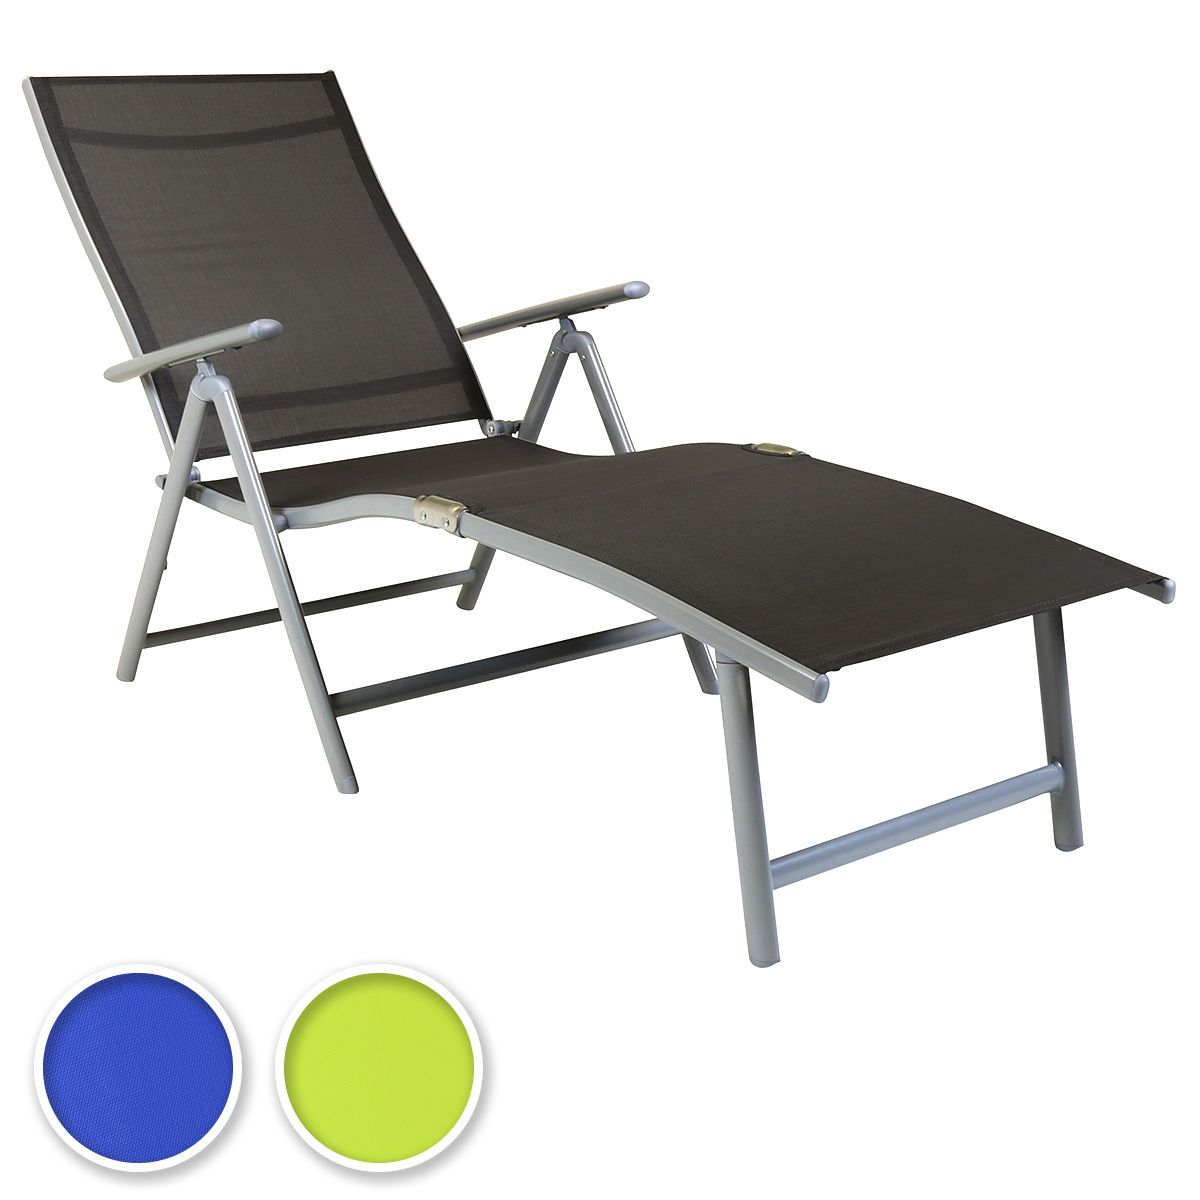 Charles Bentley Foldable Textilene Sun Lounger 7 Position Space Saving Grey